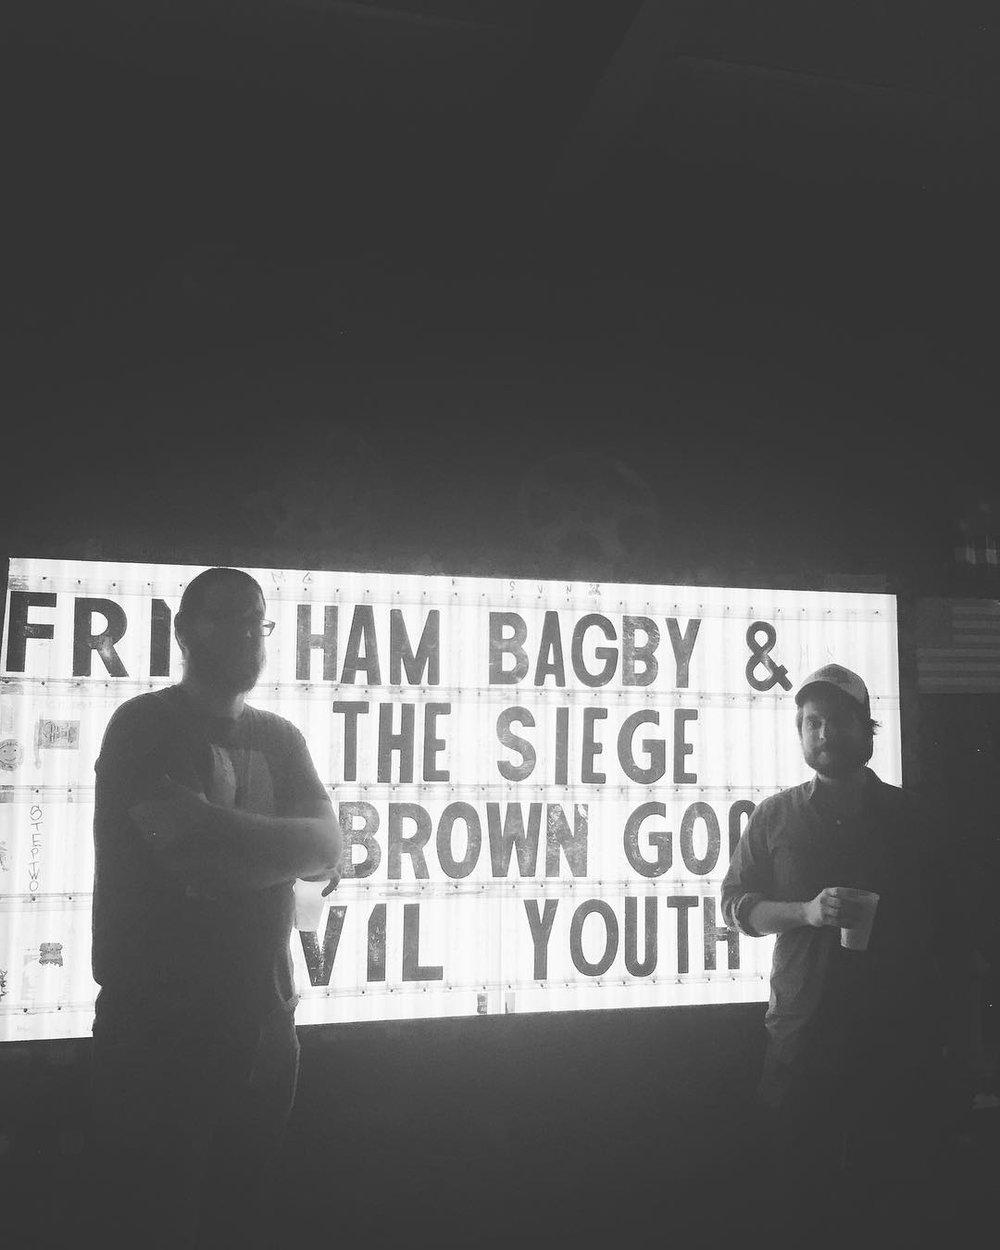 Andy Branton and Ham Bagby